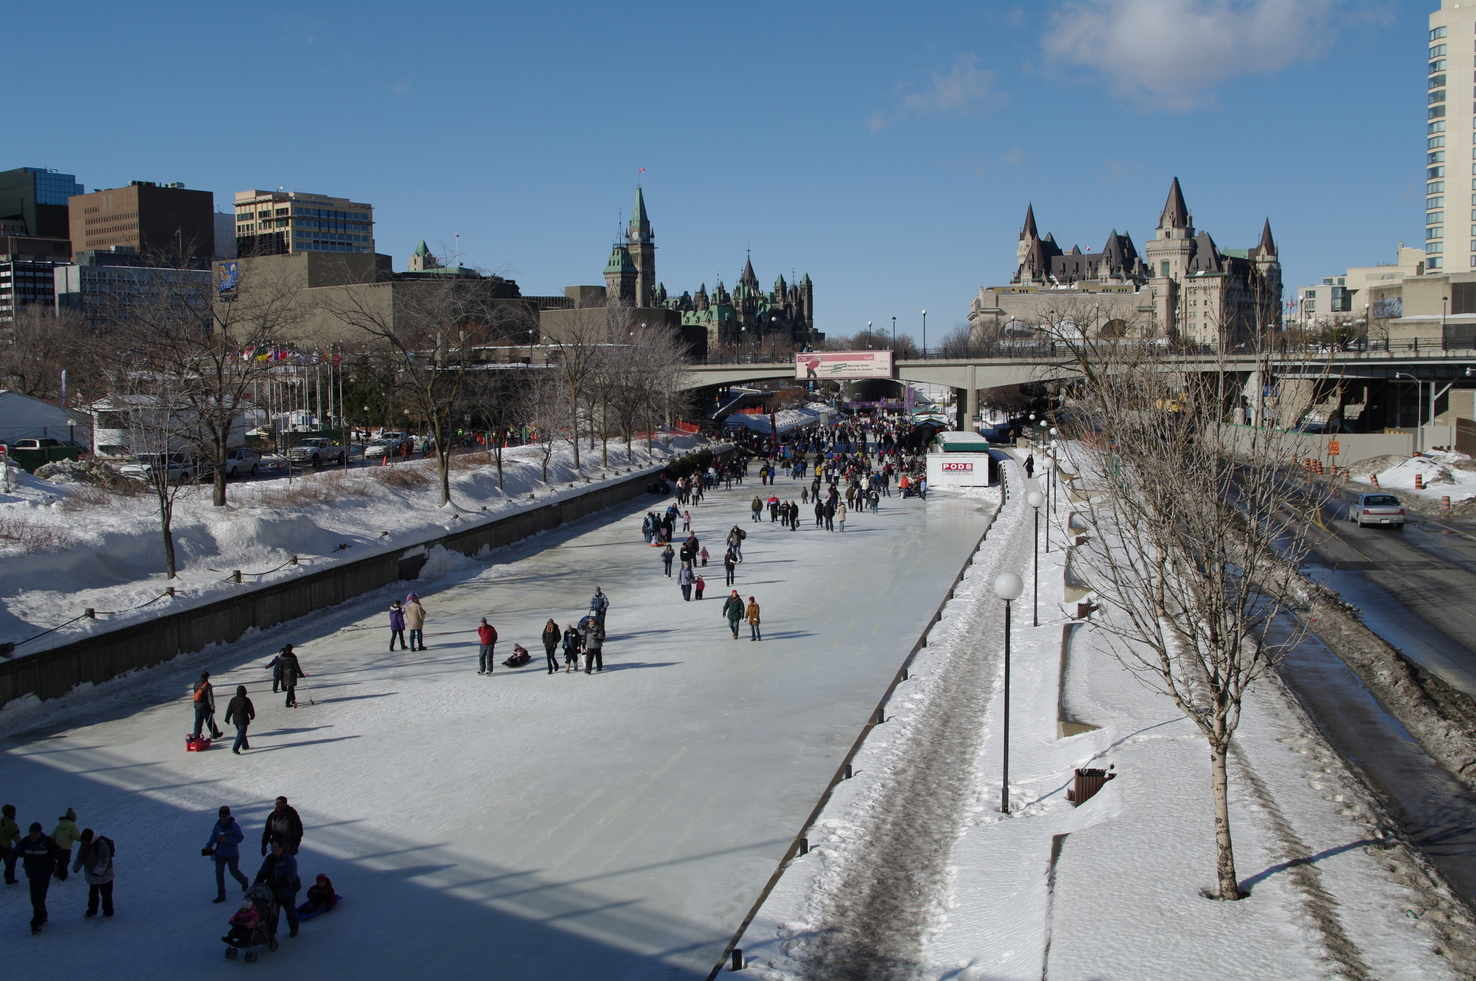 Large ottawa rideau canal skating chateau laurier parliament